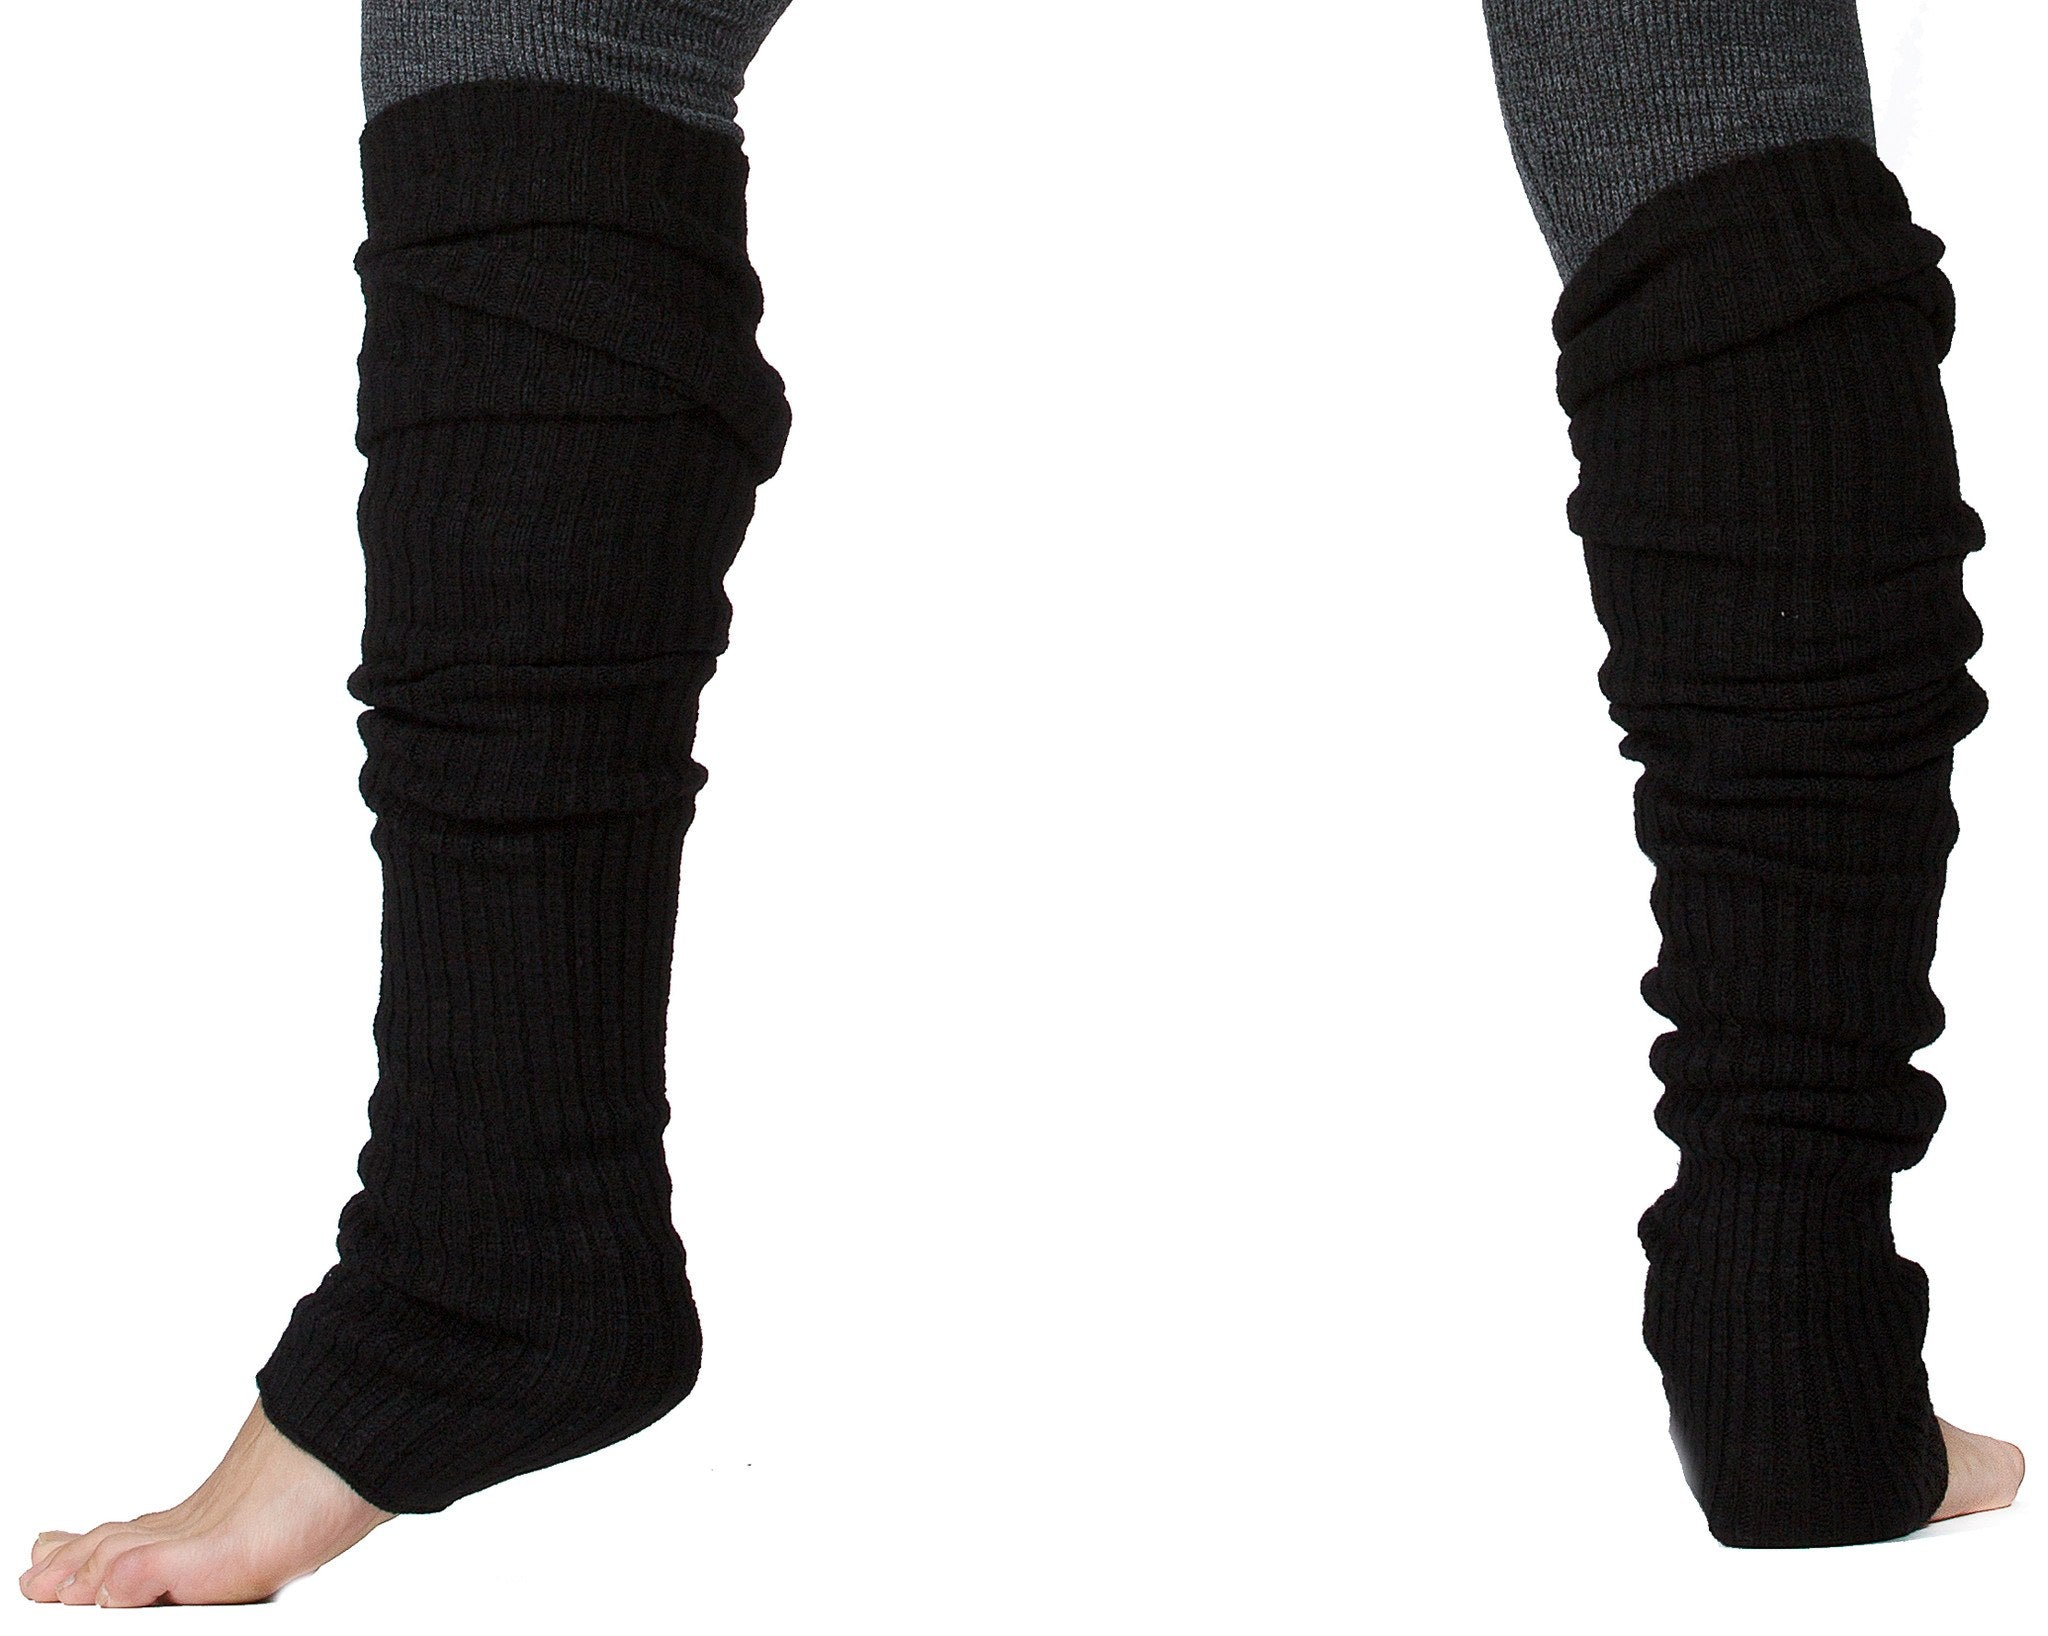 Men's Leg Warmers 16 Inch Stretch Knit Ribbed High Quality KD dance New York Made In USA @KDdanceNewYork #MadeInUSA - 2